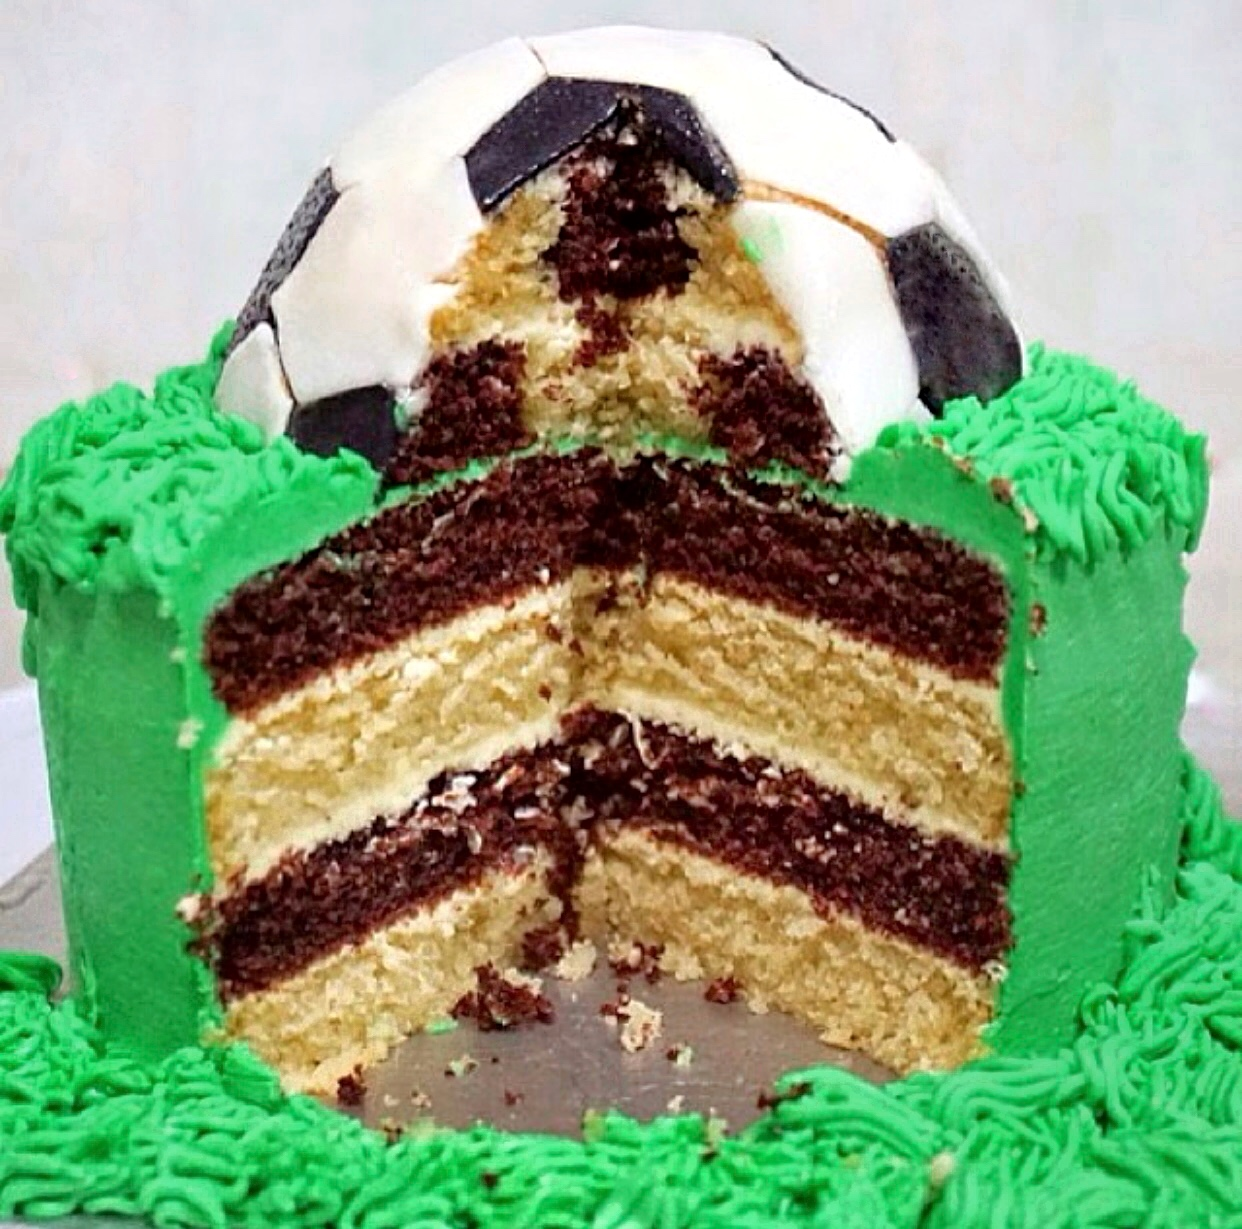 FIFA World Cup Cake